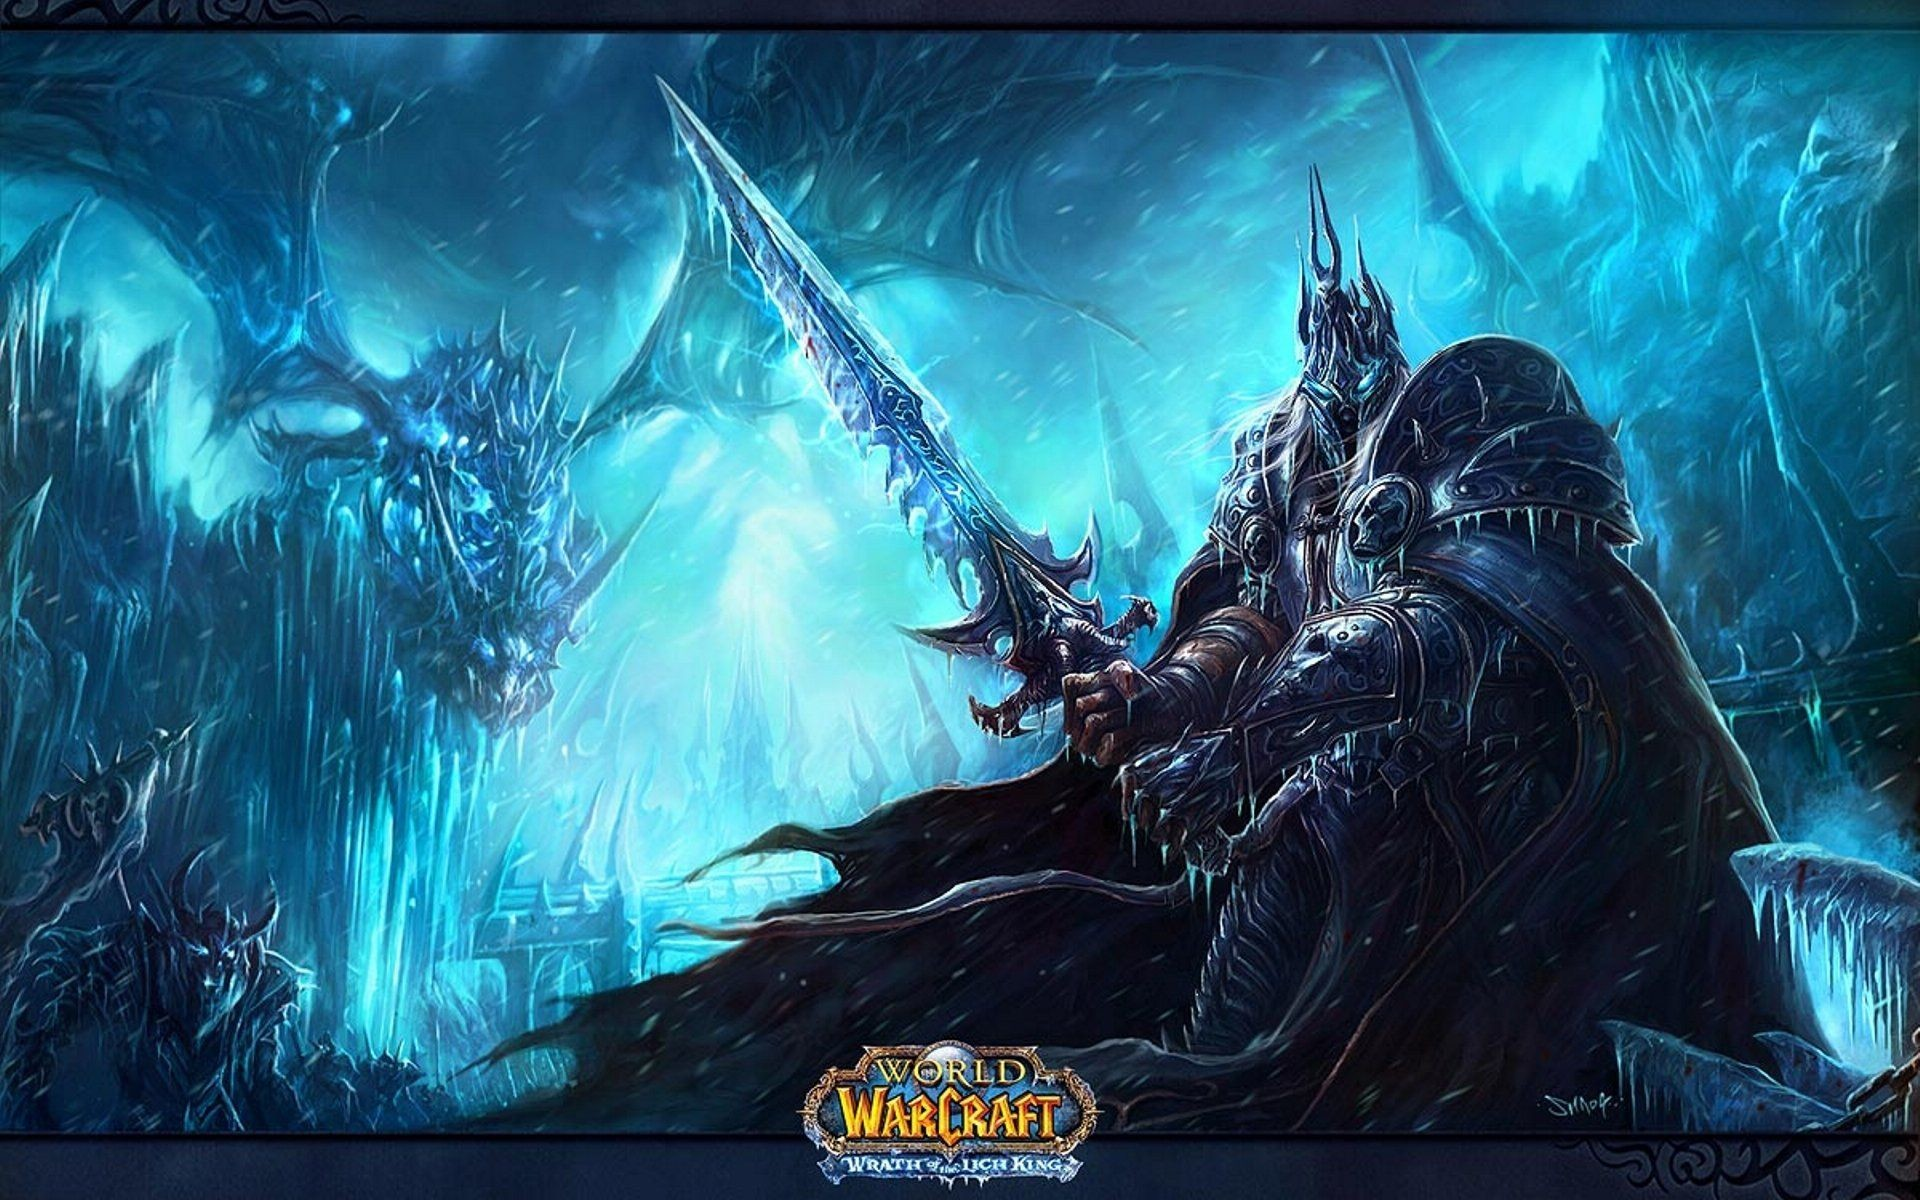 Wow screensavers and animated wallpaper 74 images - World of warcraft images ...